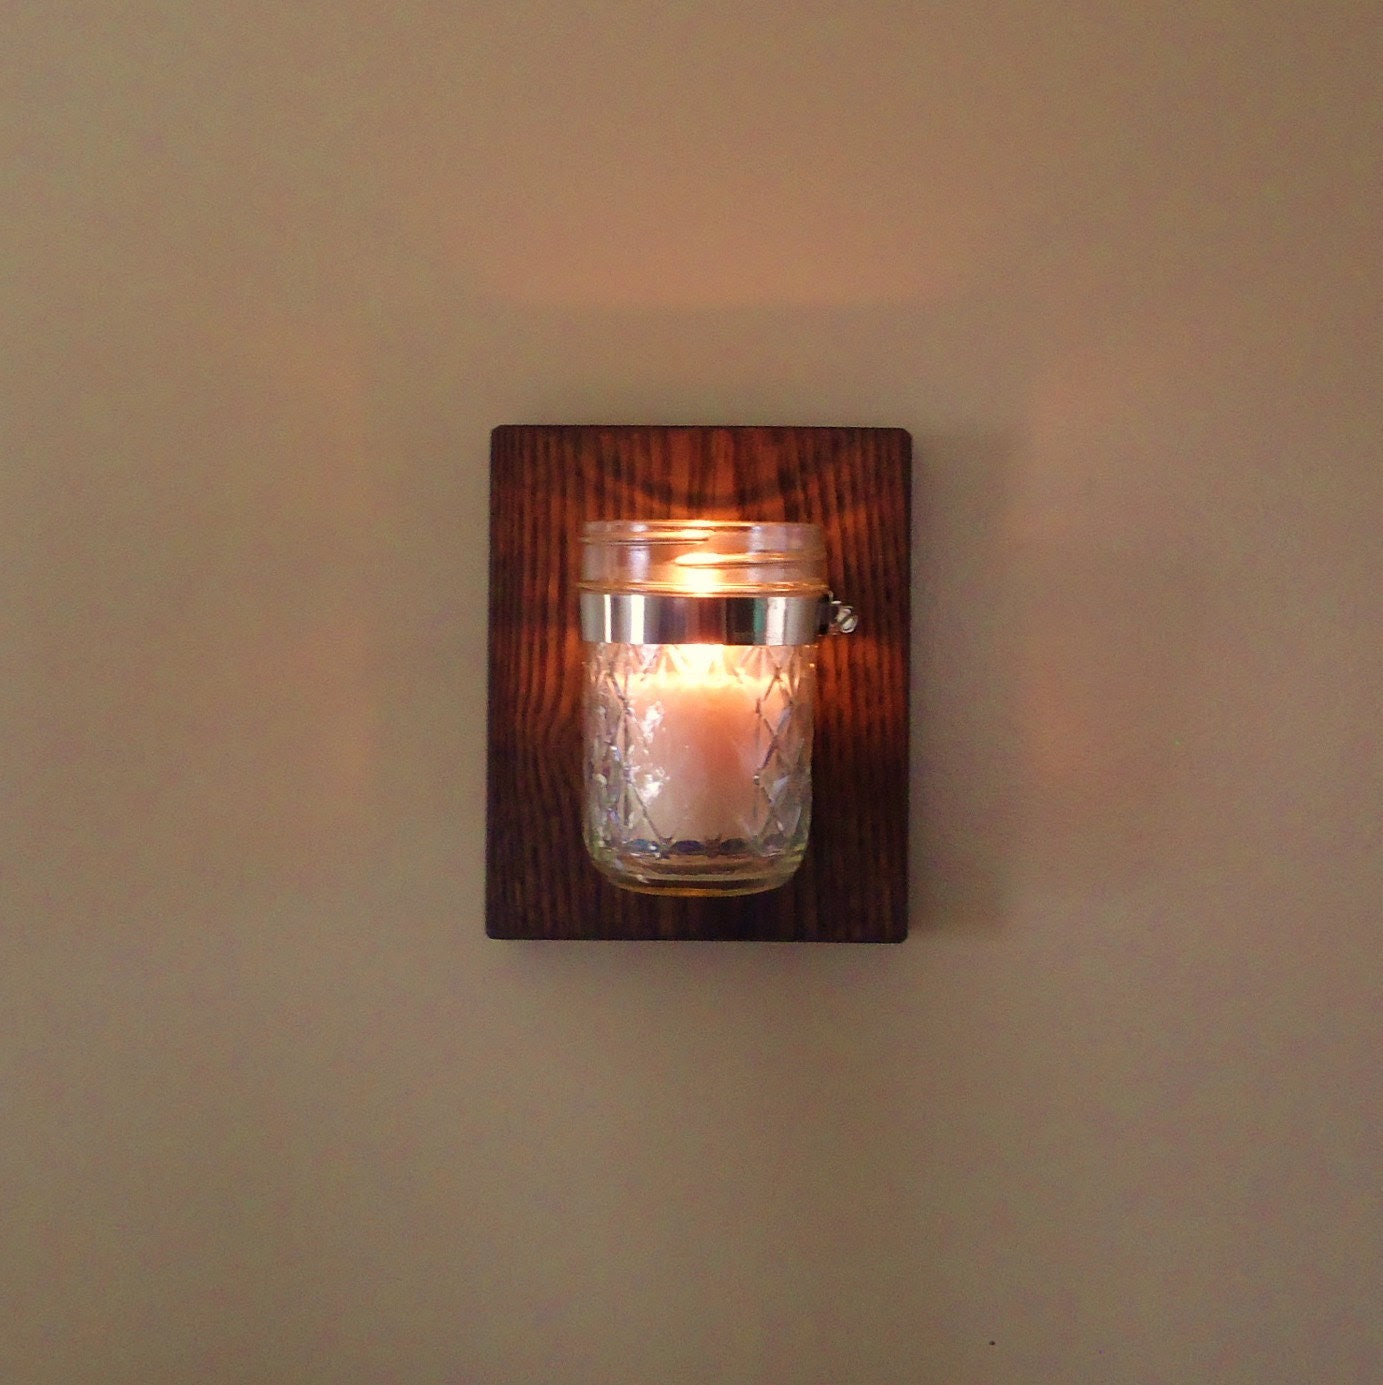 Popular items for sconces wall decor on Etsy